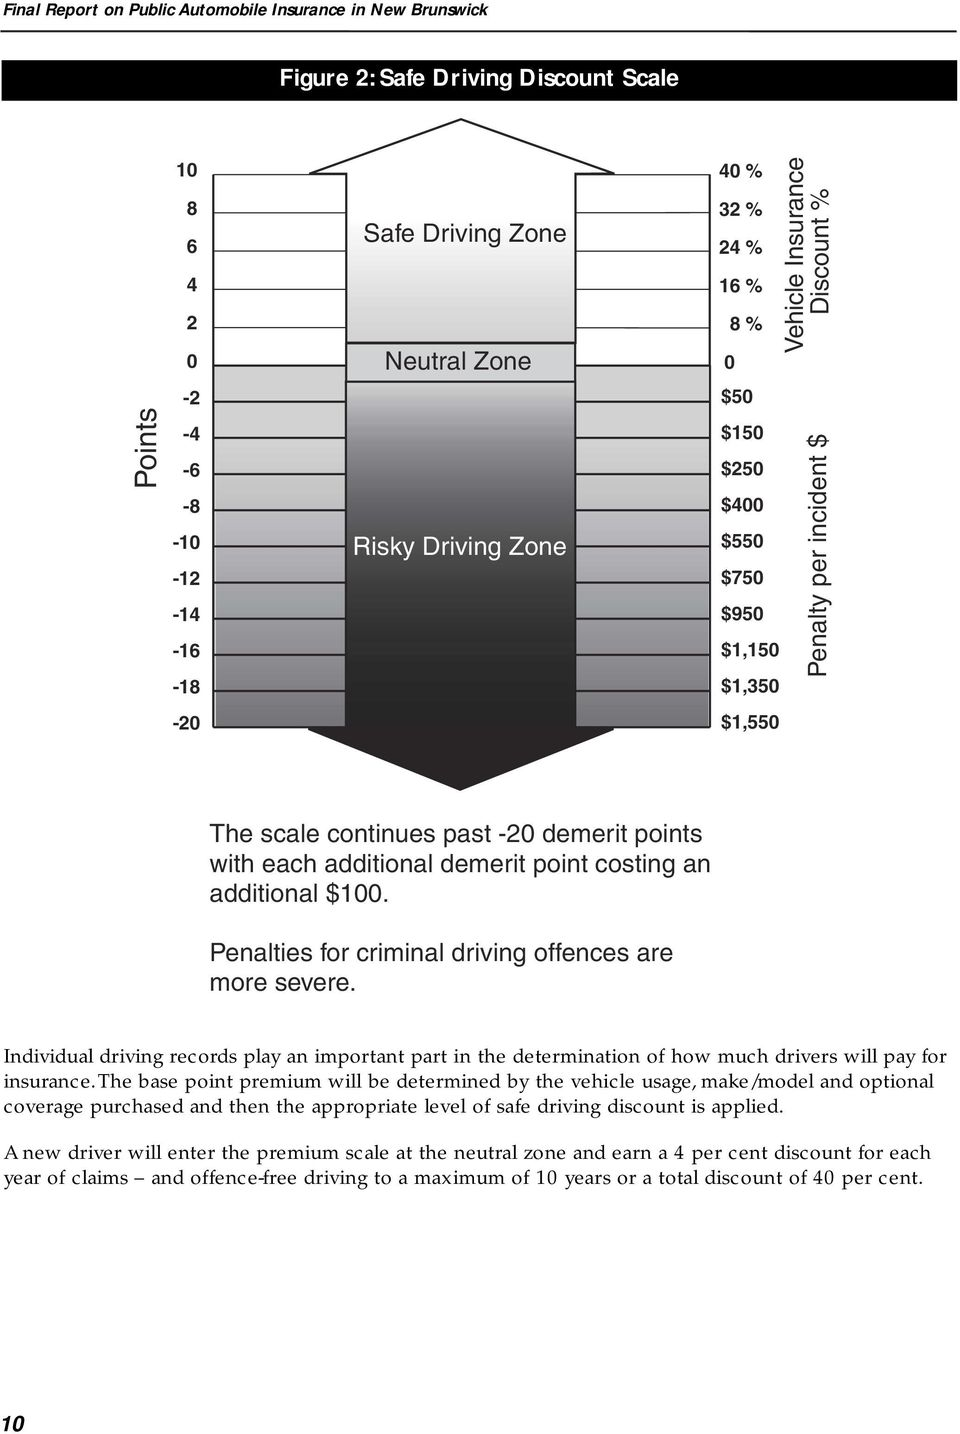 demerit point costing an additional $100. Penalties for criminal driving offences are more severe.